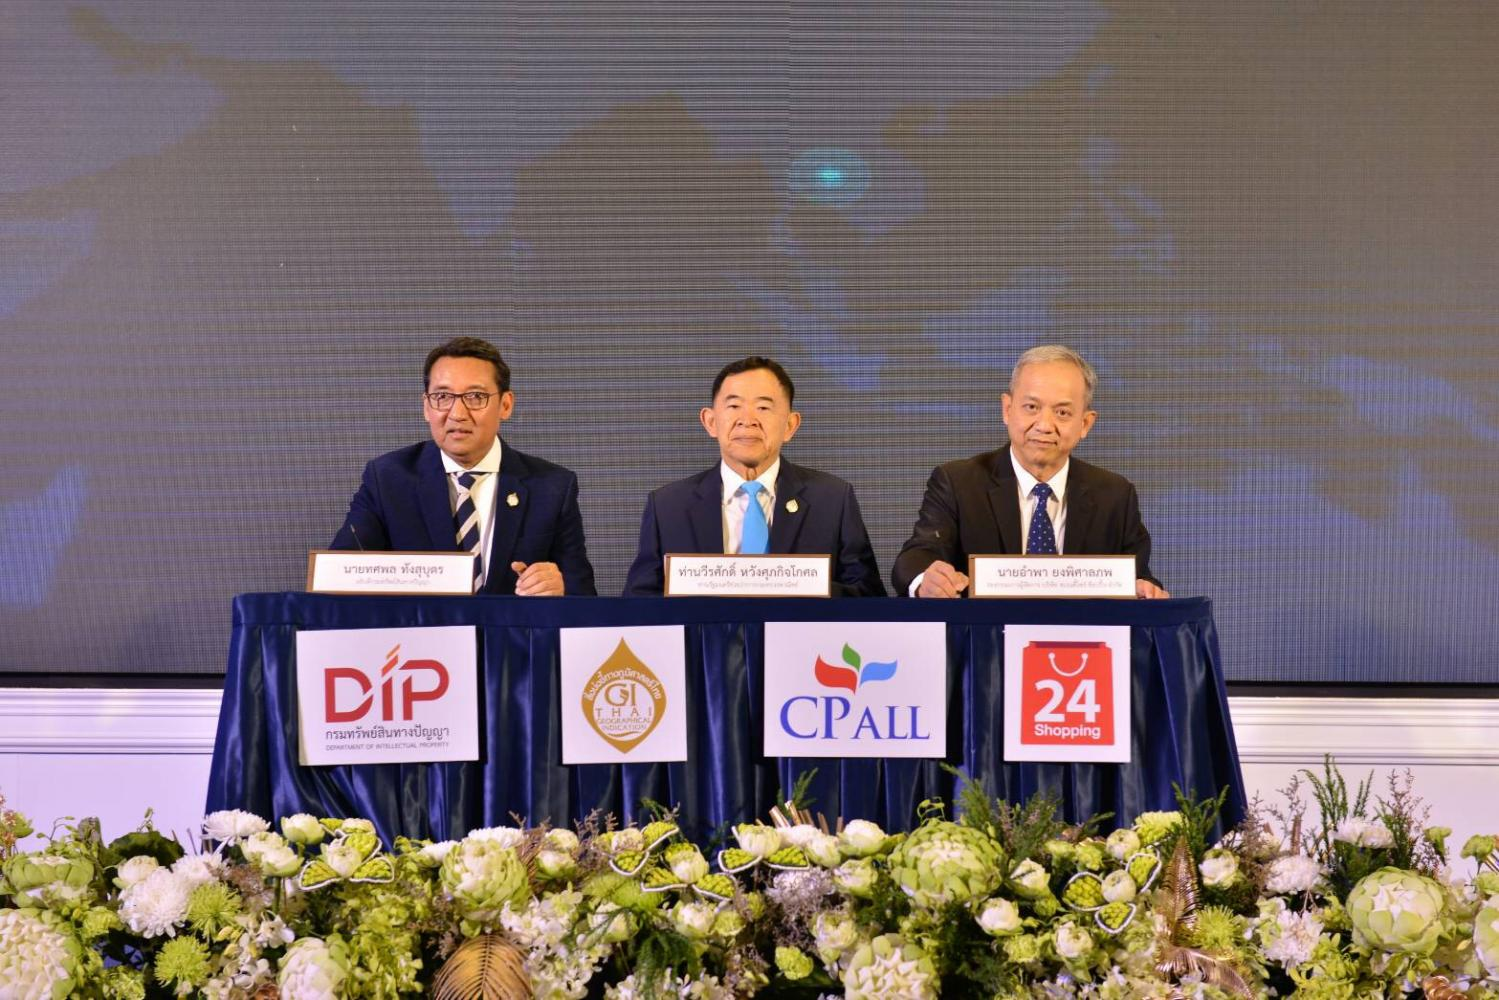 From left are director - general of Intellectual Property department, Thosapone Dansuputra, deputy commerce minister Weerasak Wangsuphakijkosol and Ampa Yongpisanpop, vice president of 24 Shopping co.